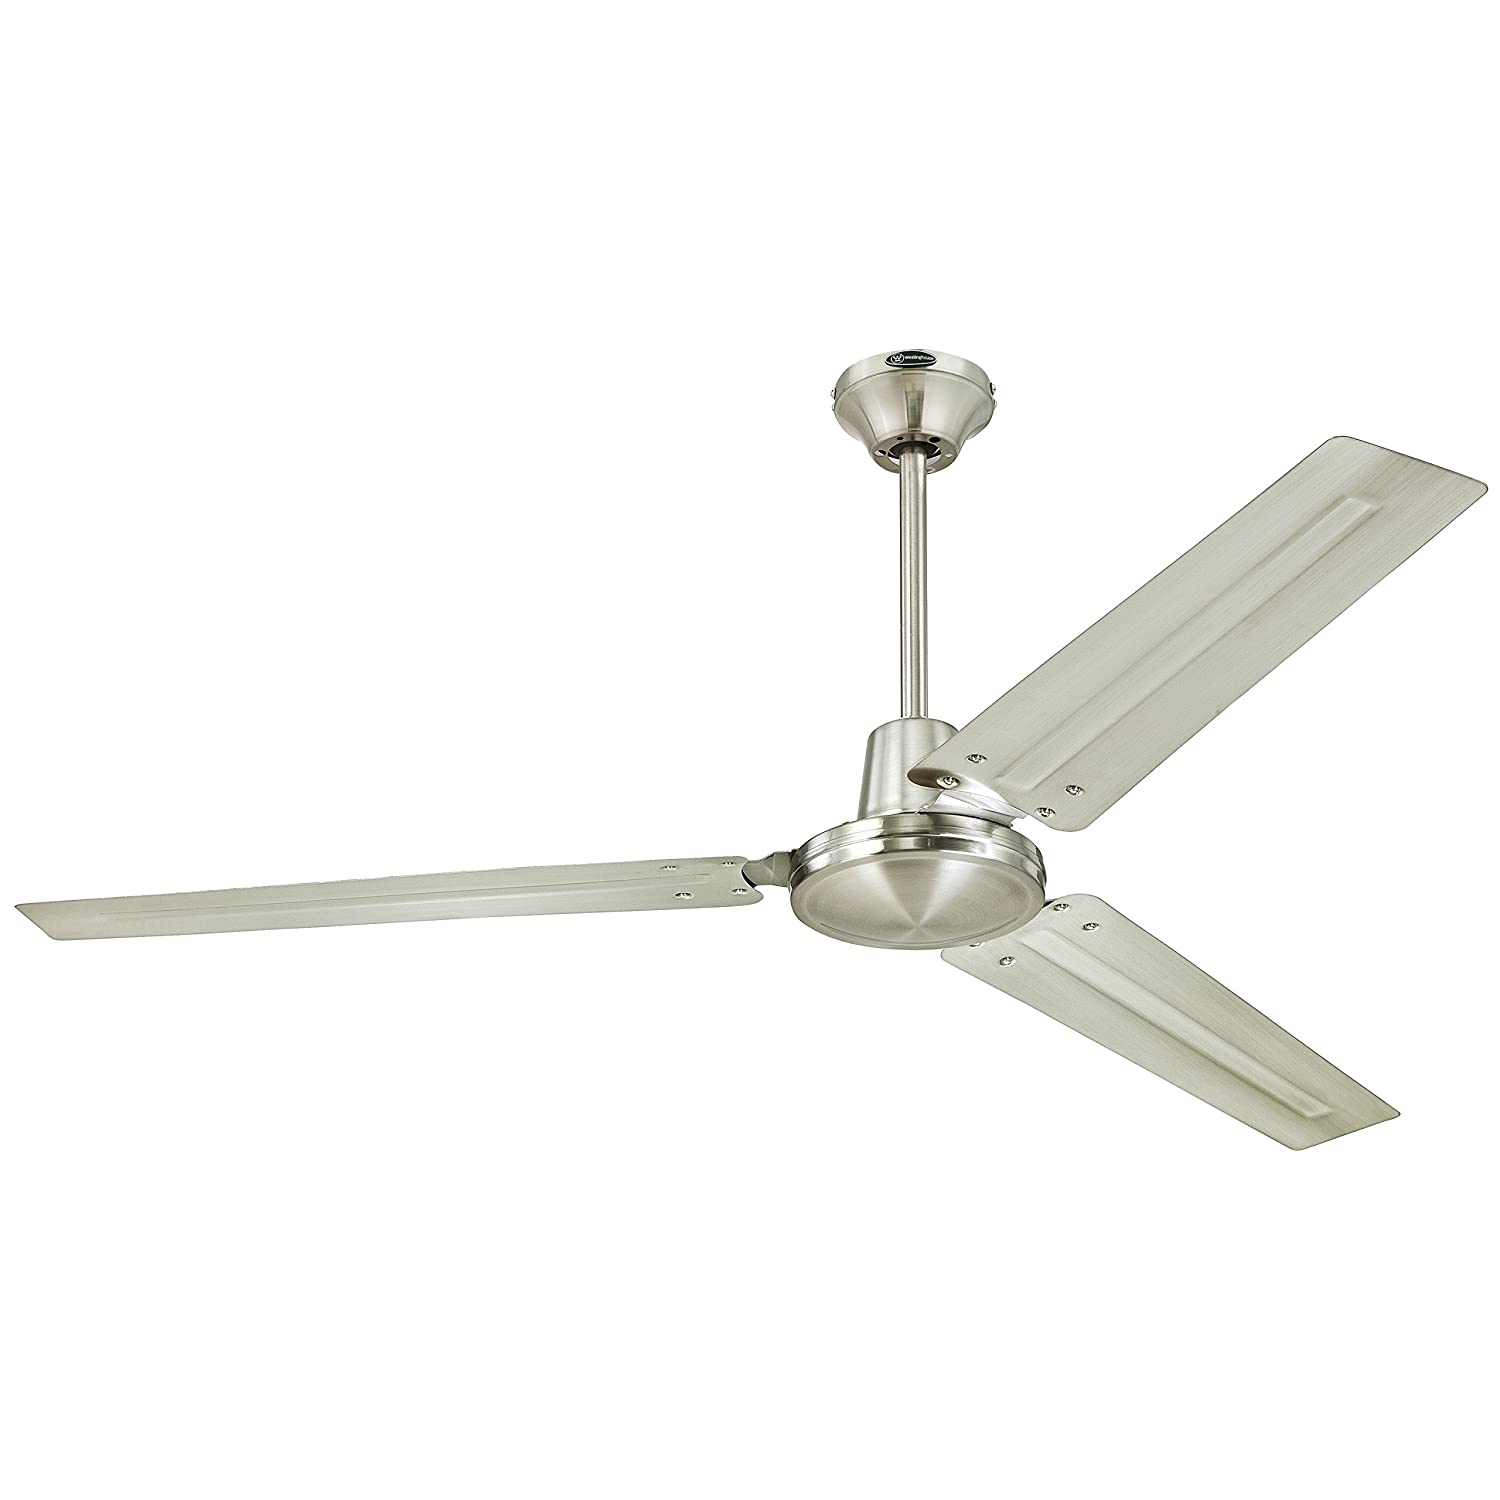 Westinghouse Ceiling Fan Review 2017 Knowtheflow